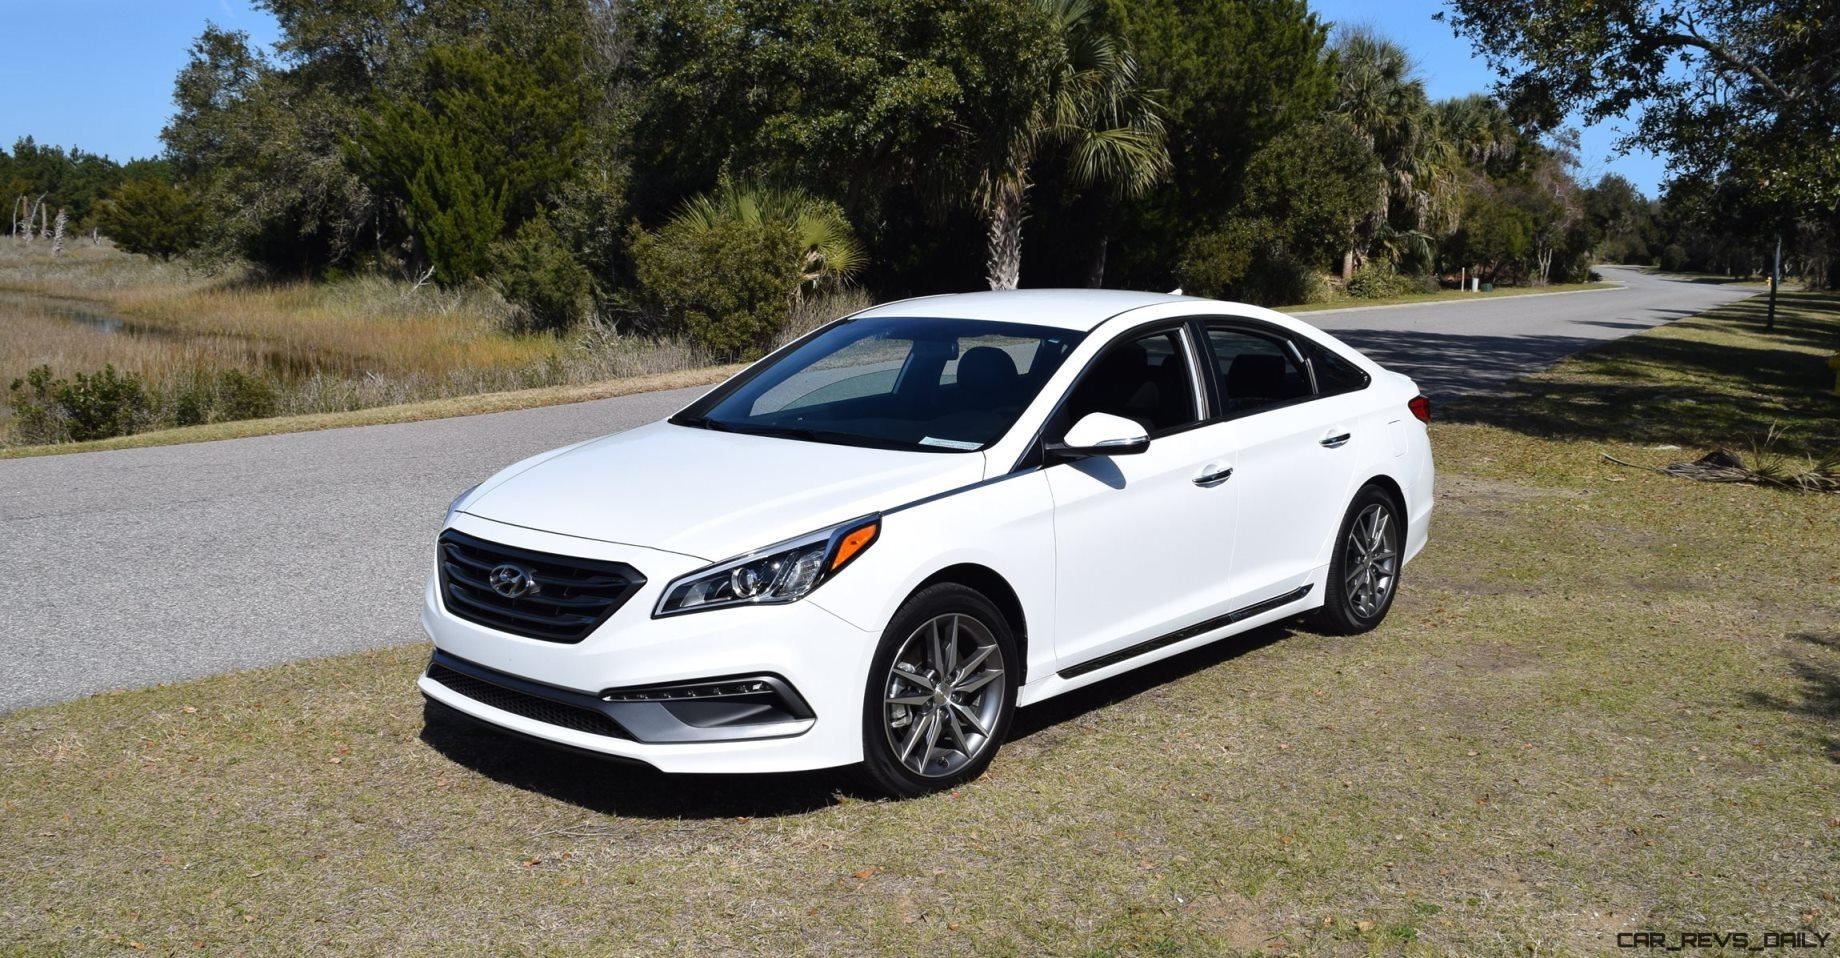 2016 hyundai sonata sport 2 0t quartz white 21. Black Bedroom Furniture Sets. Home Design Ideas